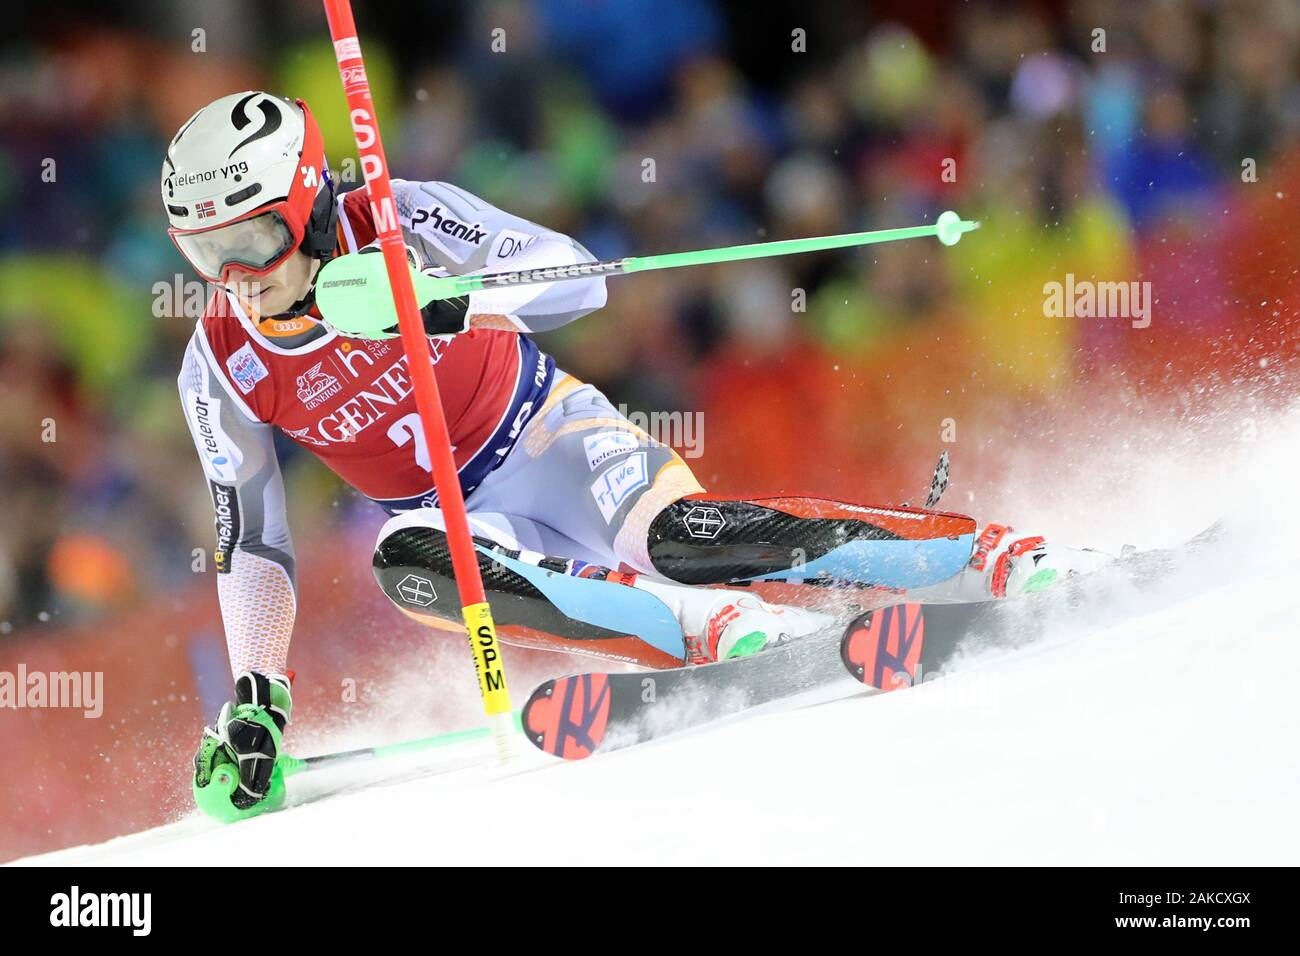 Madonna di Campiglio, Italy. 8th Jan 2020. FIS Alpine Ski World Cup Men's Night Slalom in Madonna di Campiglio, Italy on January 8, 2020, Henrik Kristoffersen (NOR) - Editorial Use Credit: Action Plus Sports Images/Alamy Live News Stock Photo